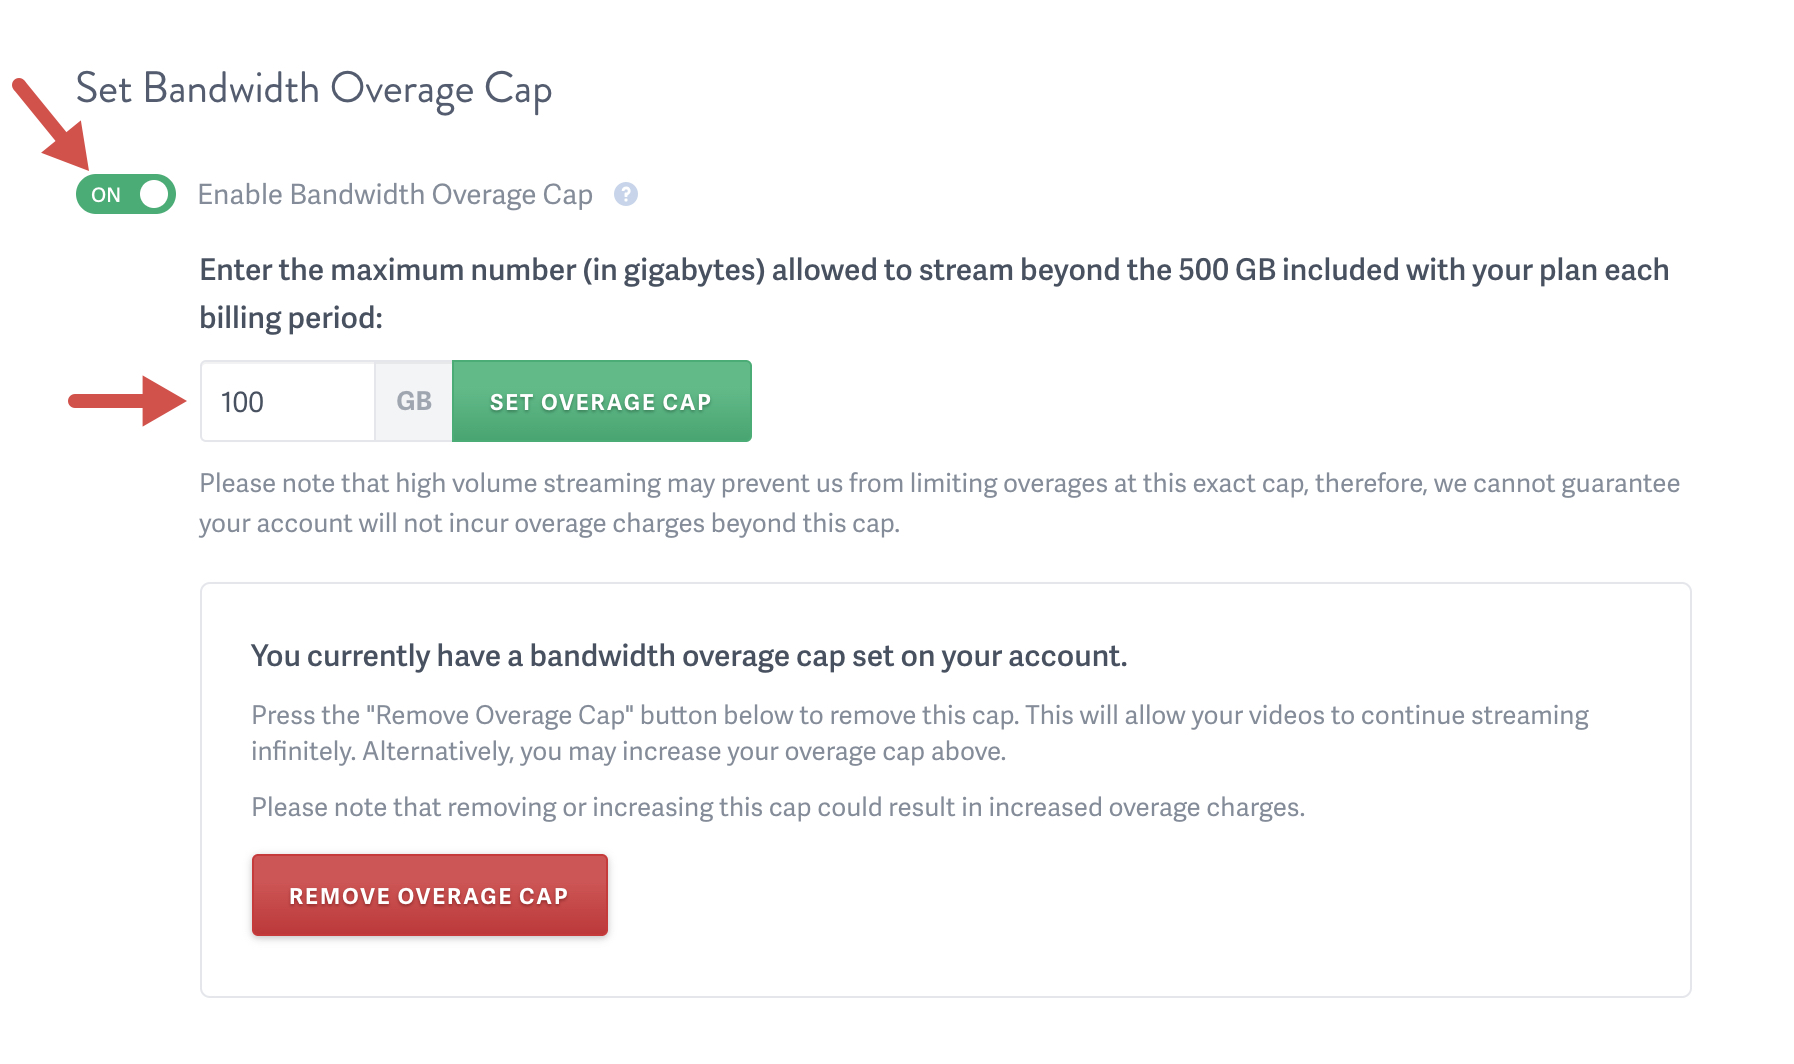 set a Bandwidth Overage Cap